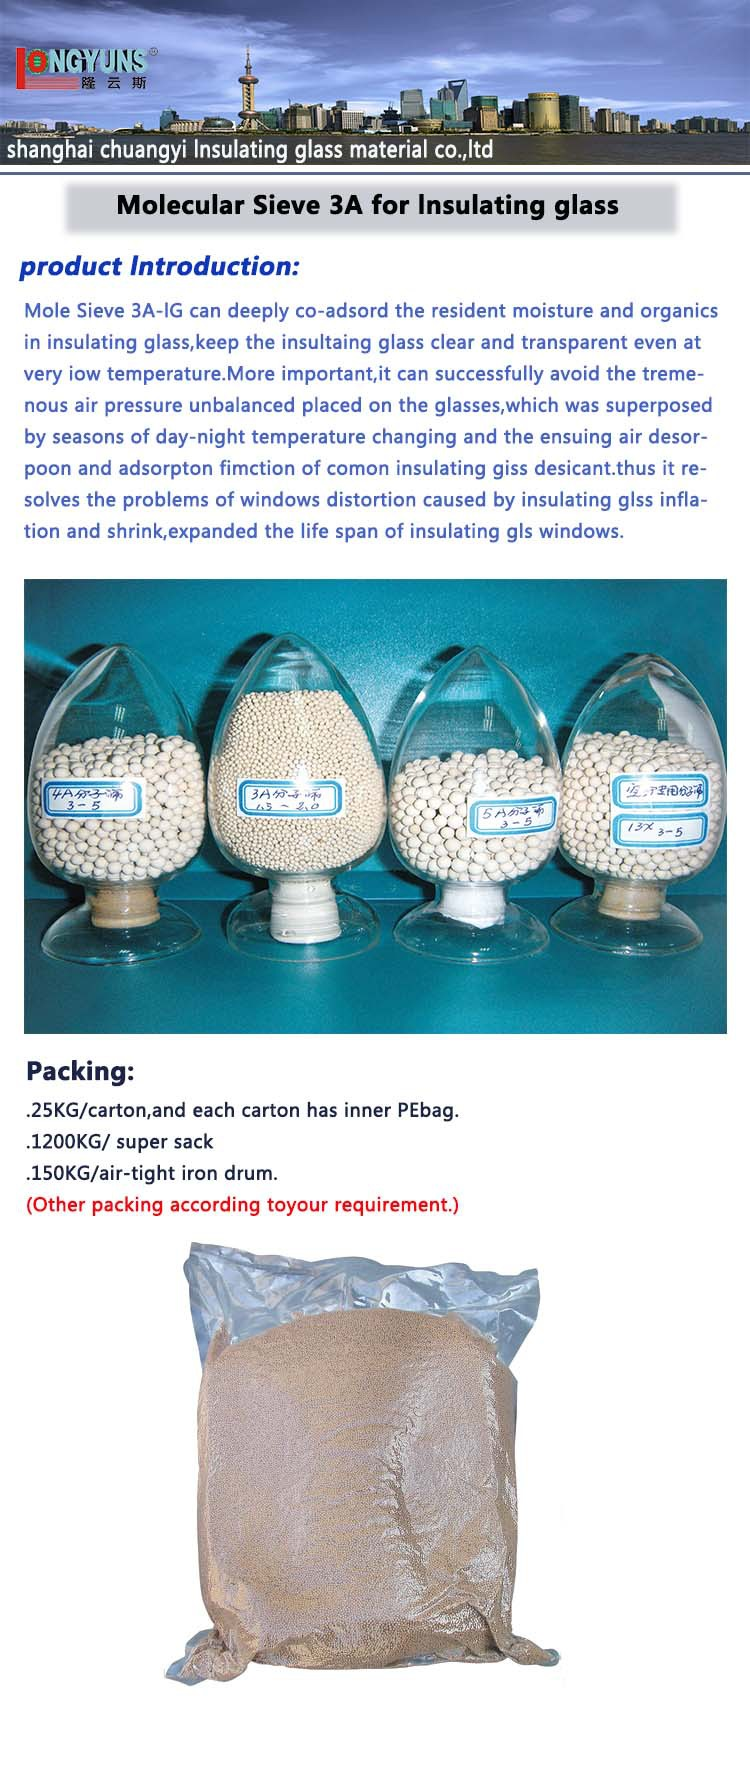 Molecular sieve for double glass